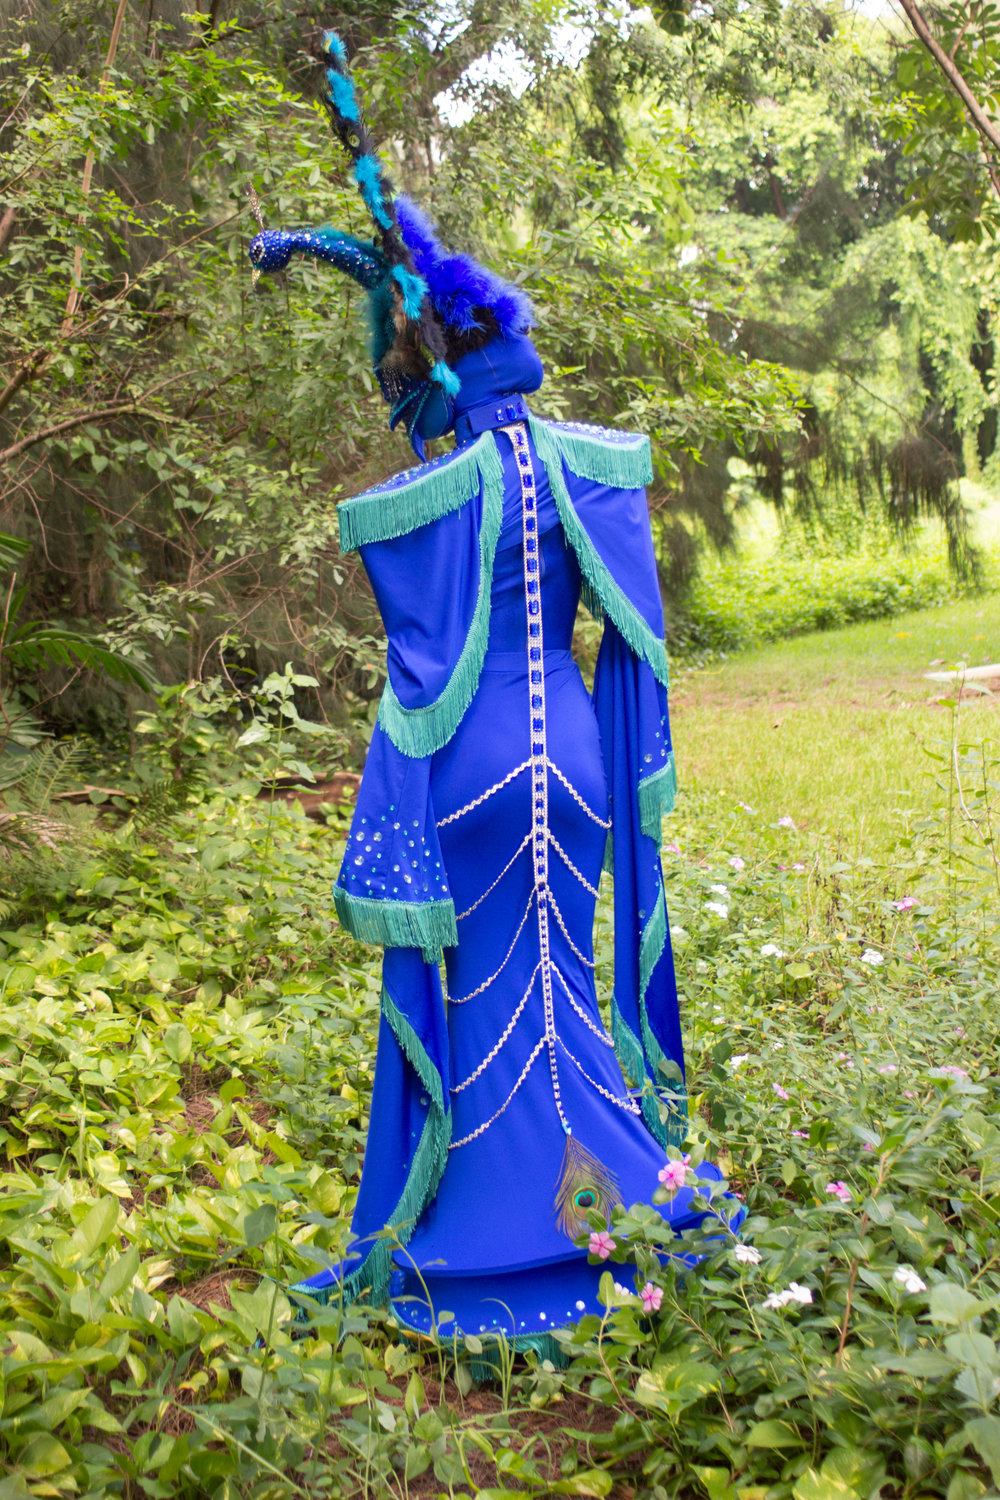 Peacock fairytale-8861.jpg